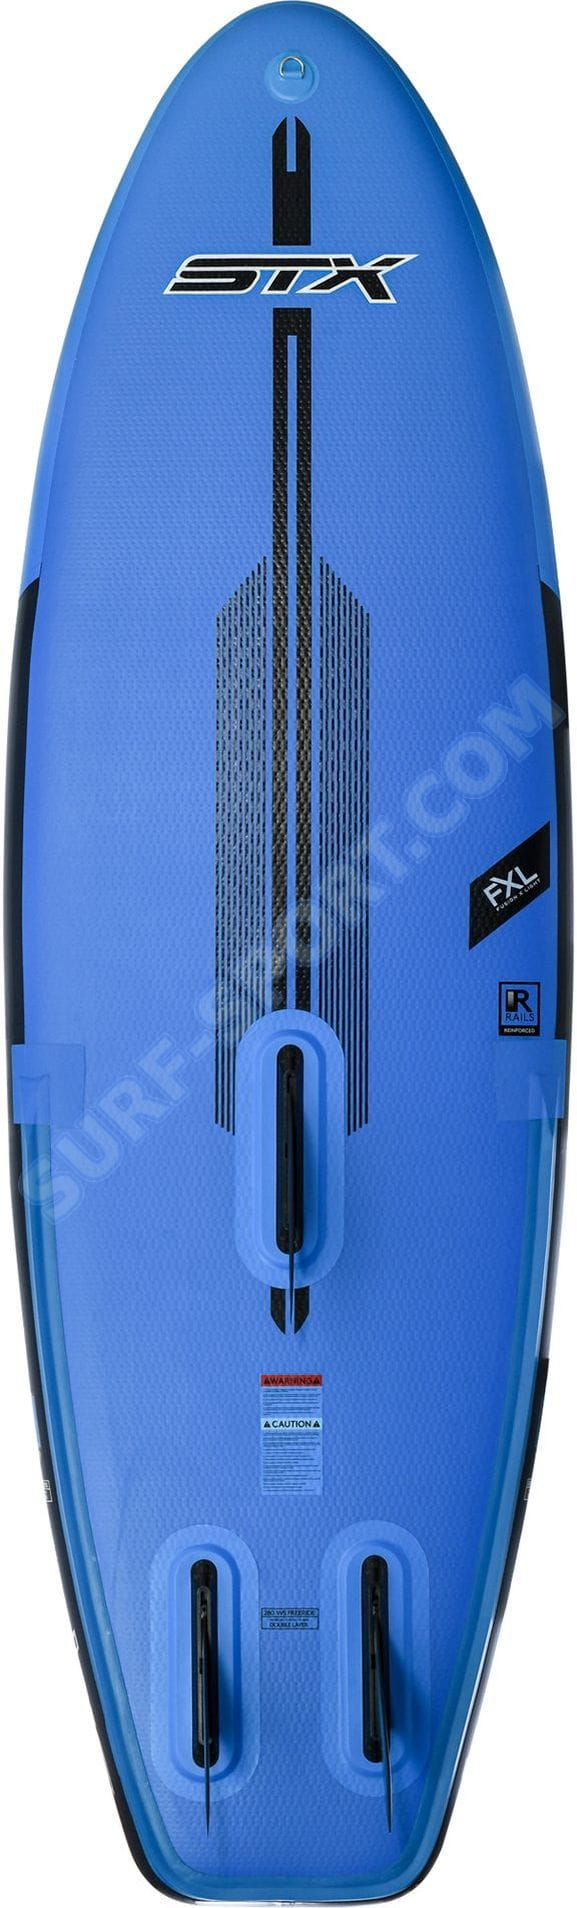 280-STX-Inflatable-Windsurfing-Board-2019.jpg